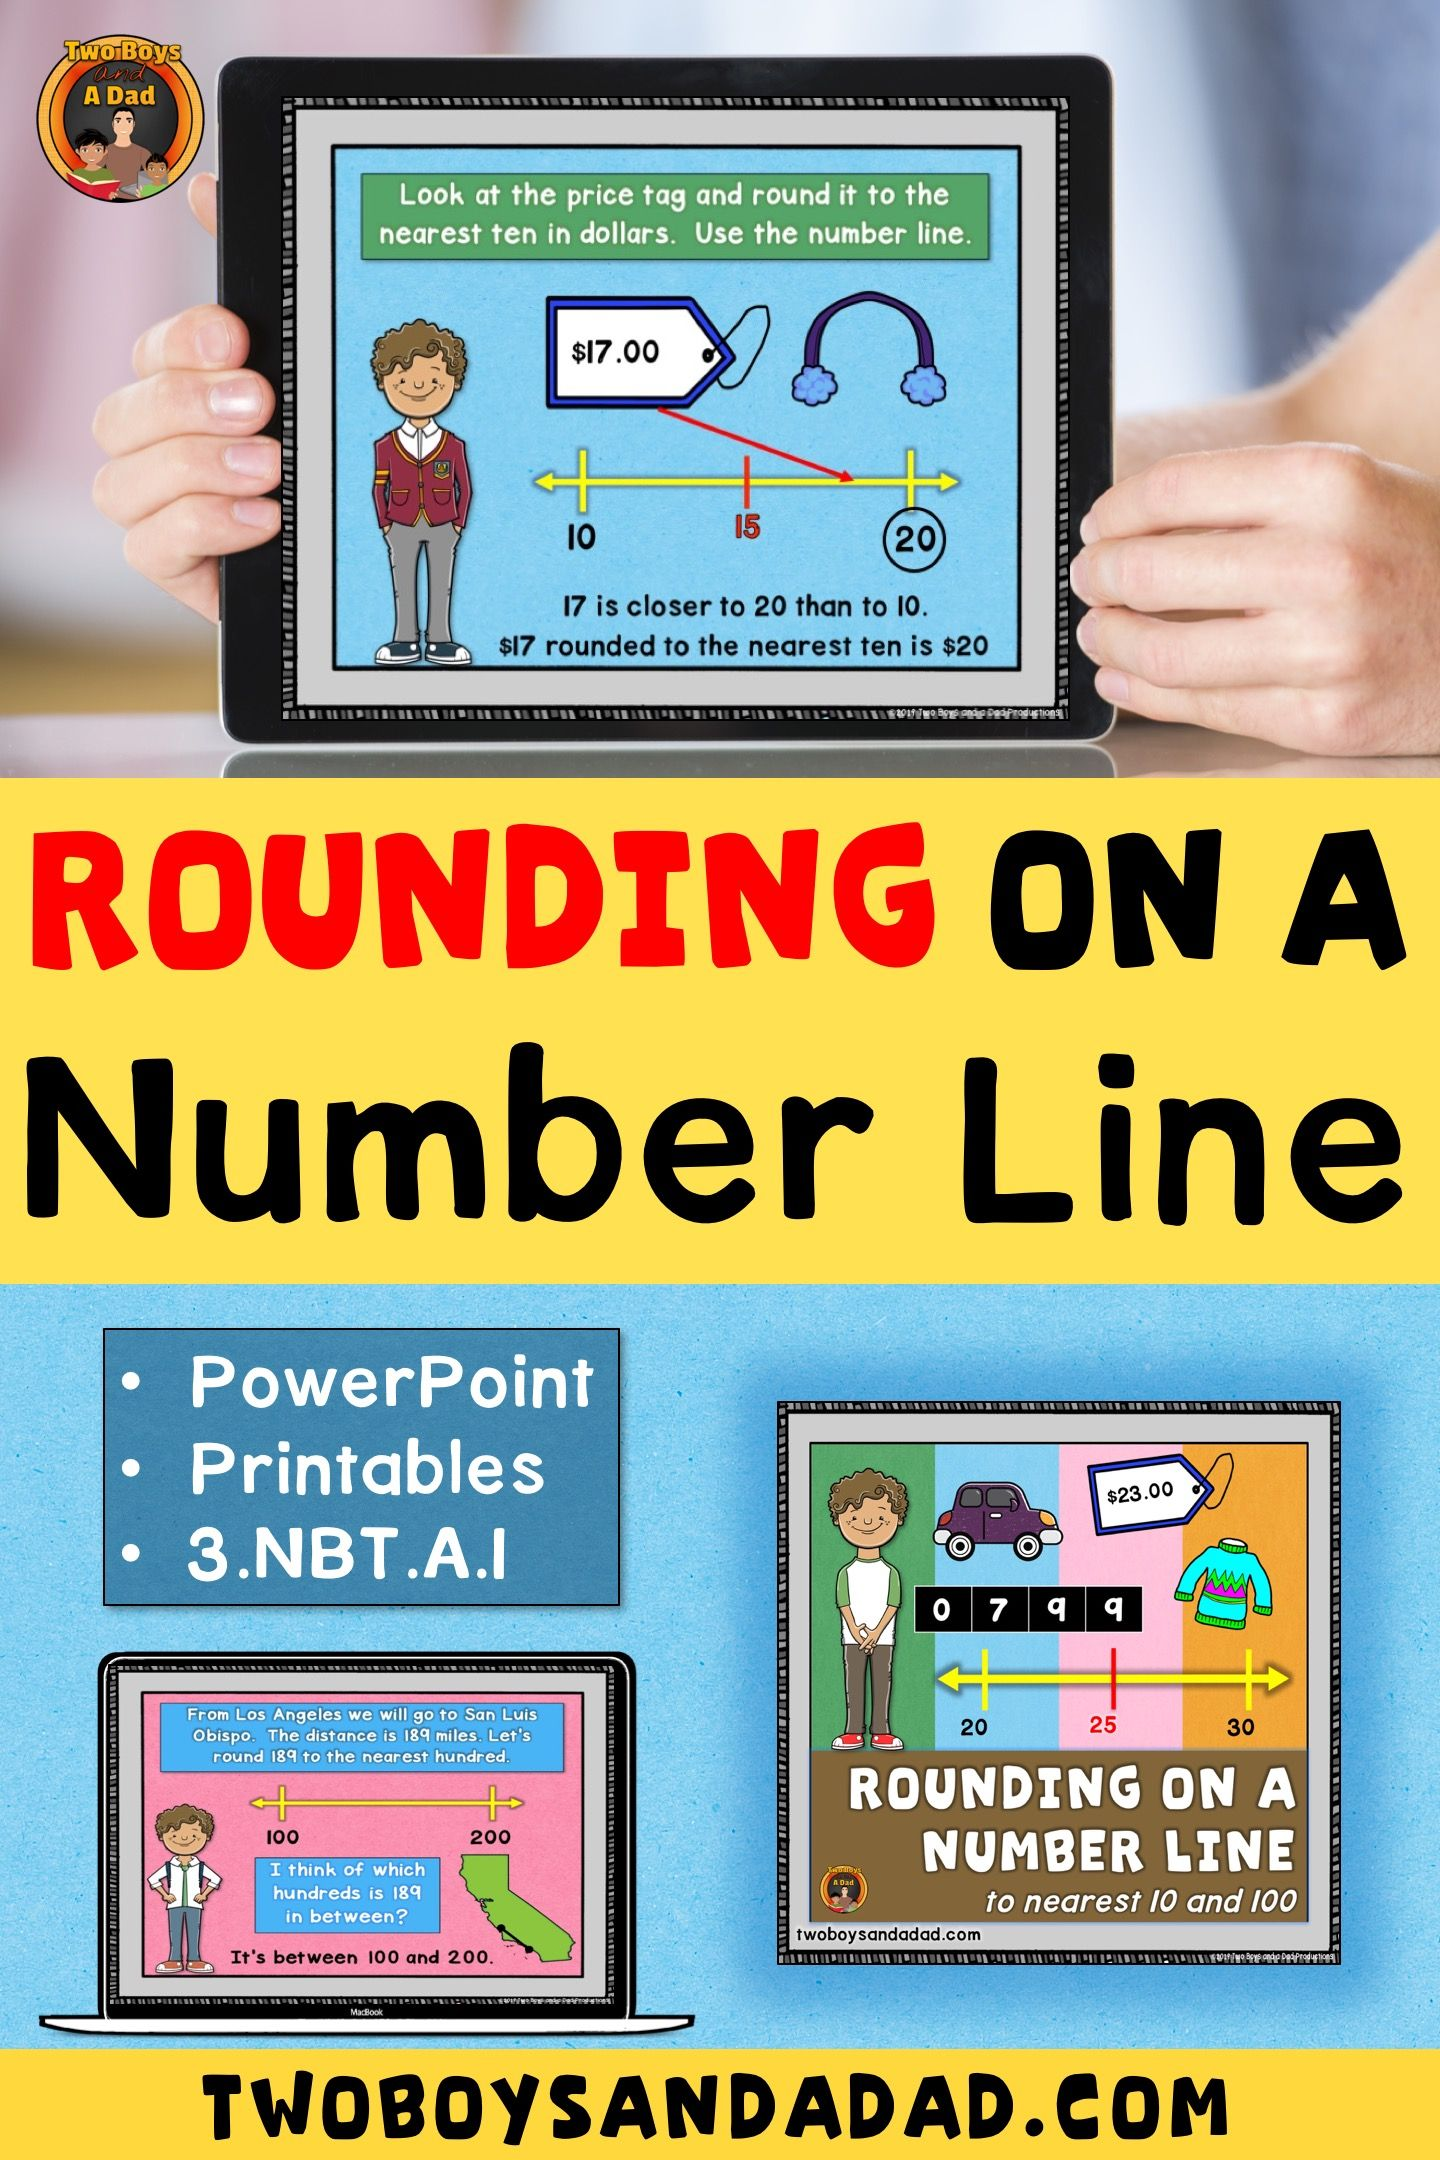 Rounding On A Number Line Builds Conceptual Understanding